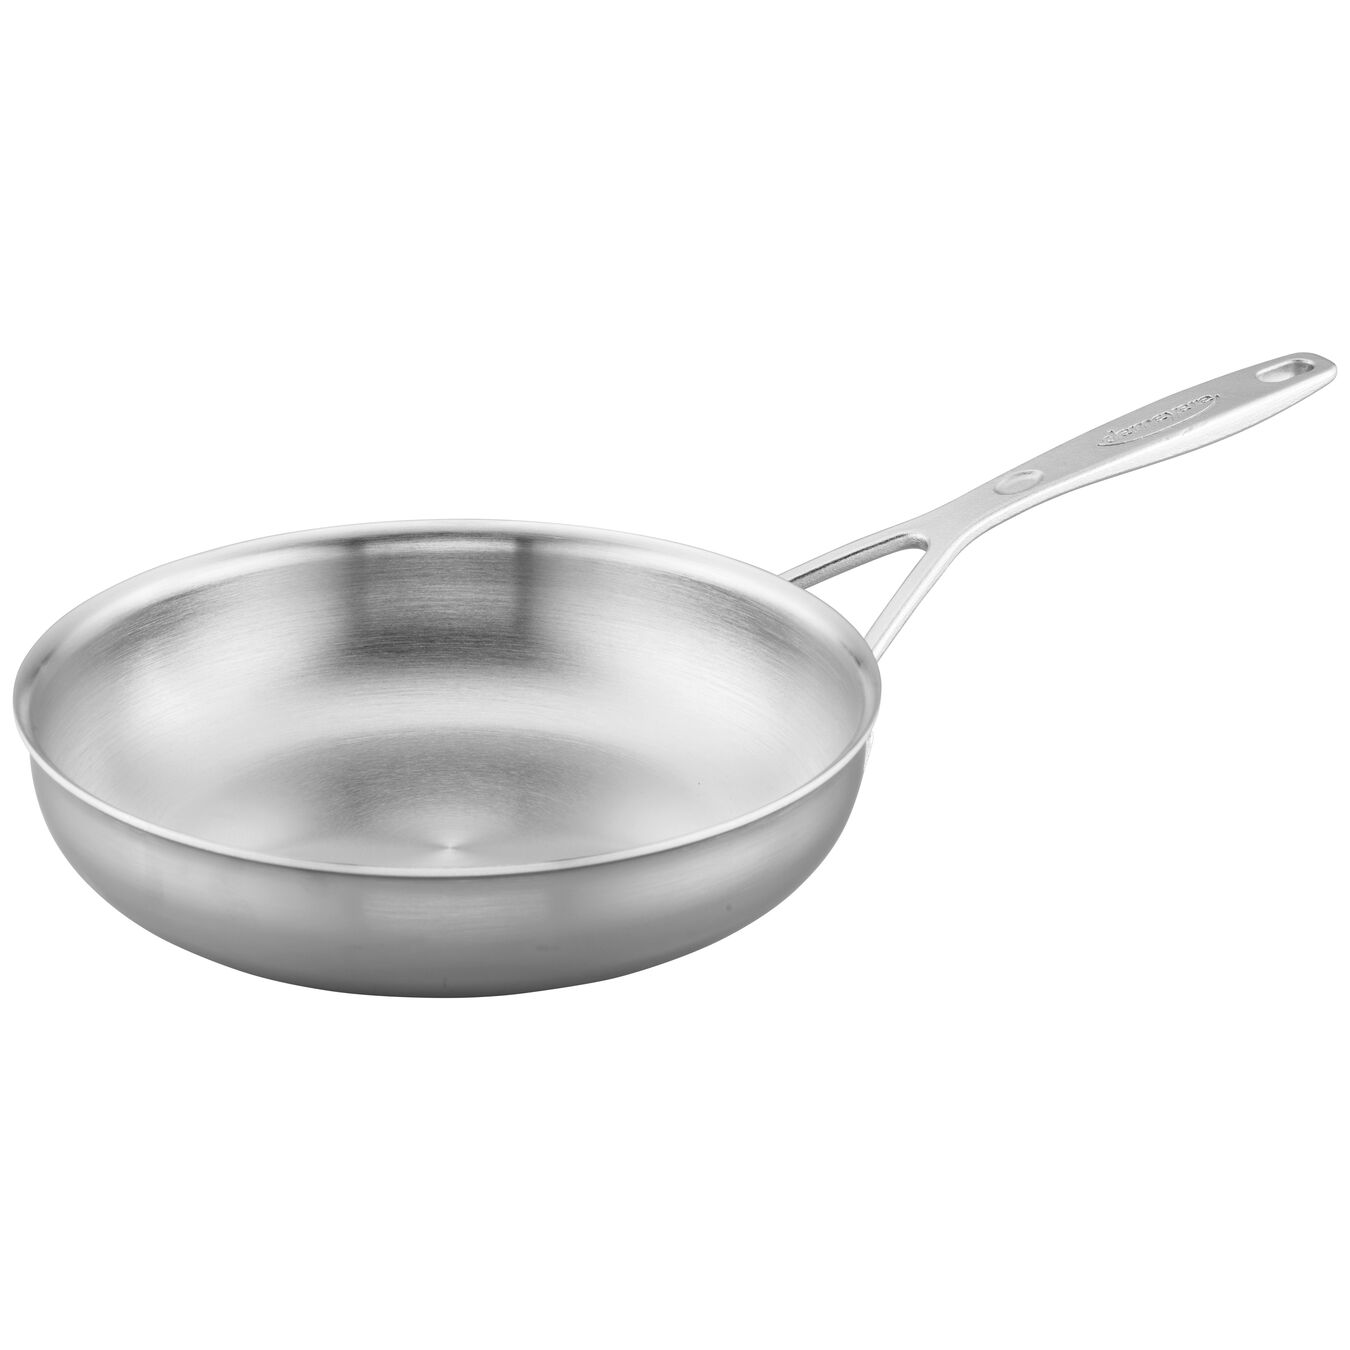 9.5-inch, 18/10 Stainless Steel, Non-stick, Frying pan,,large 3